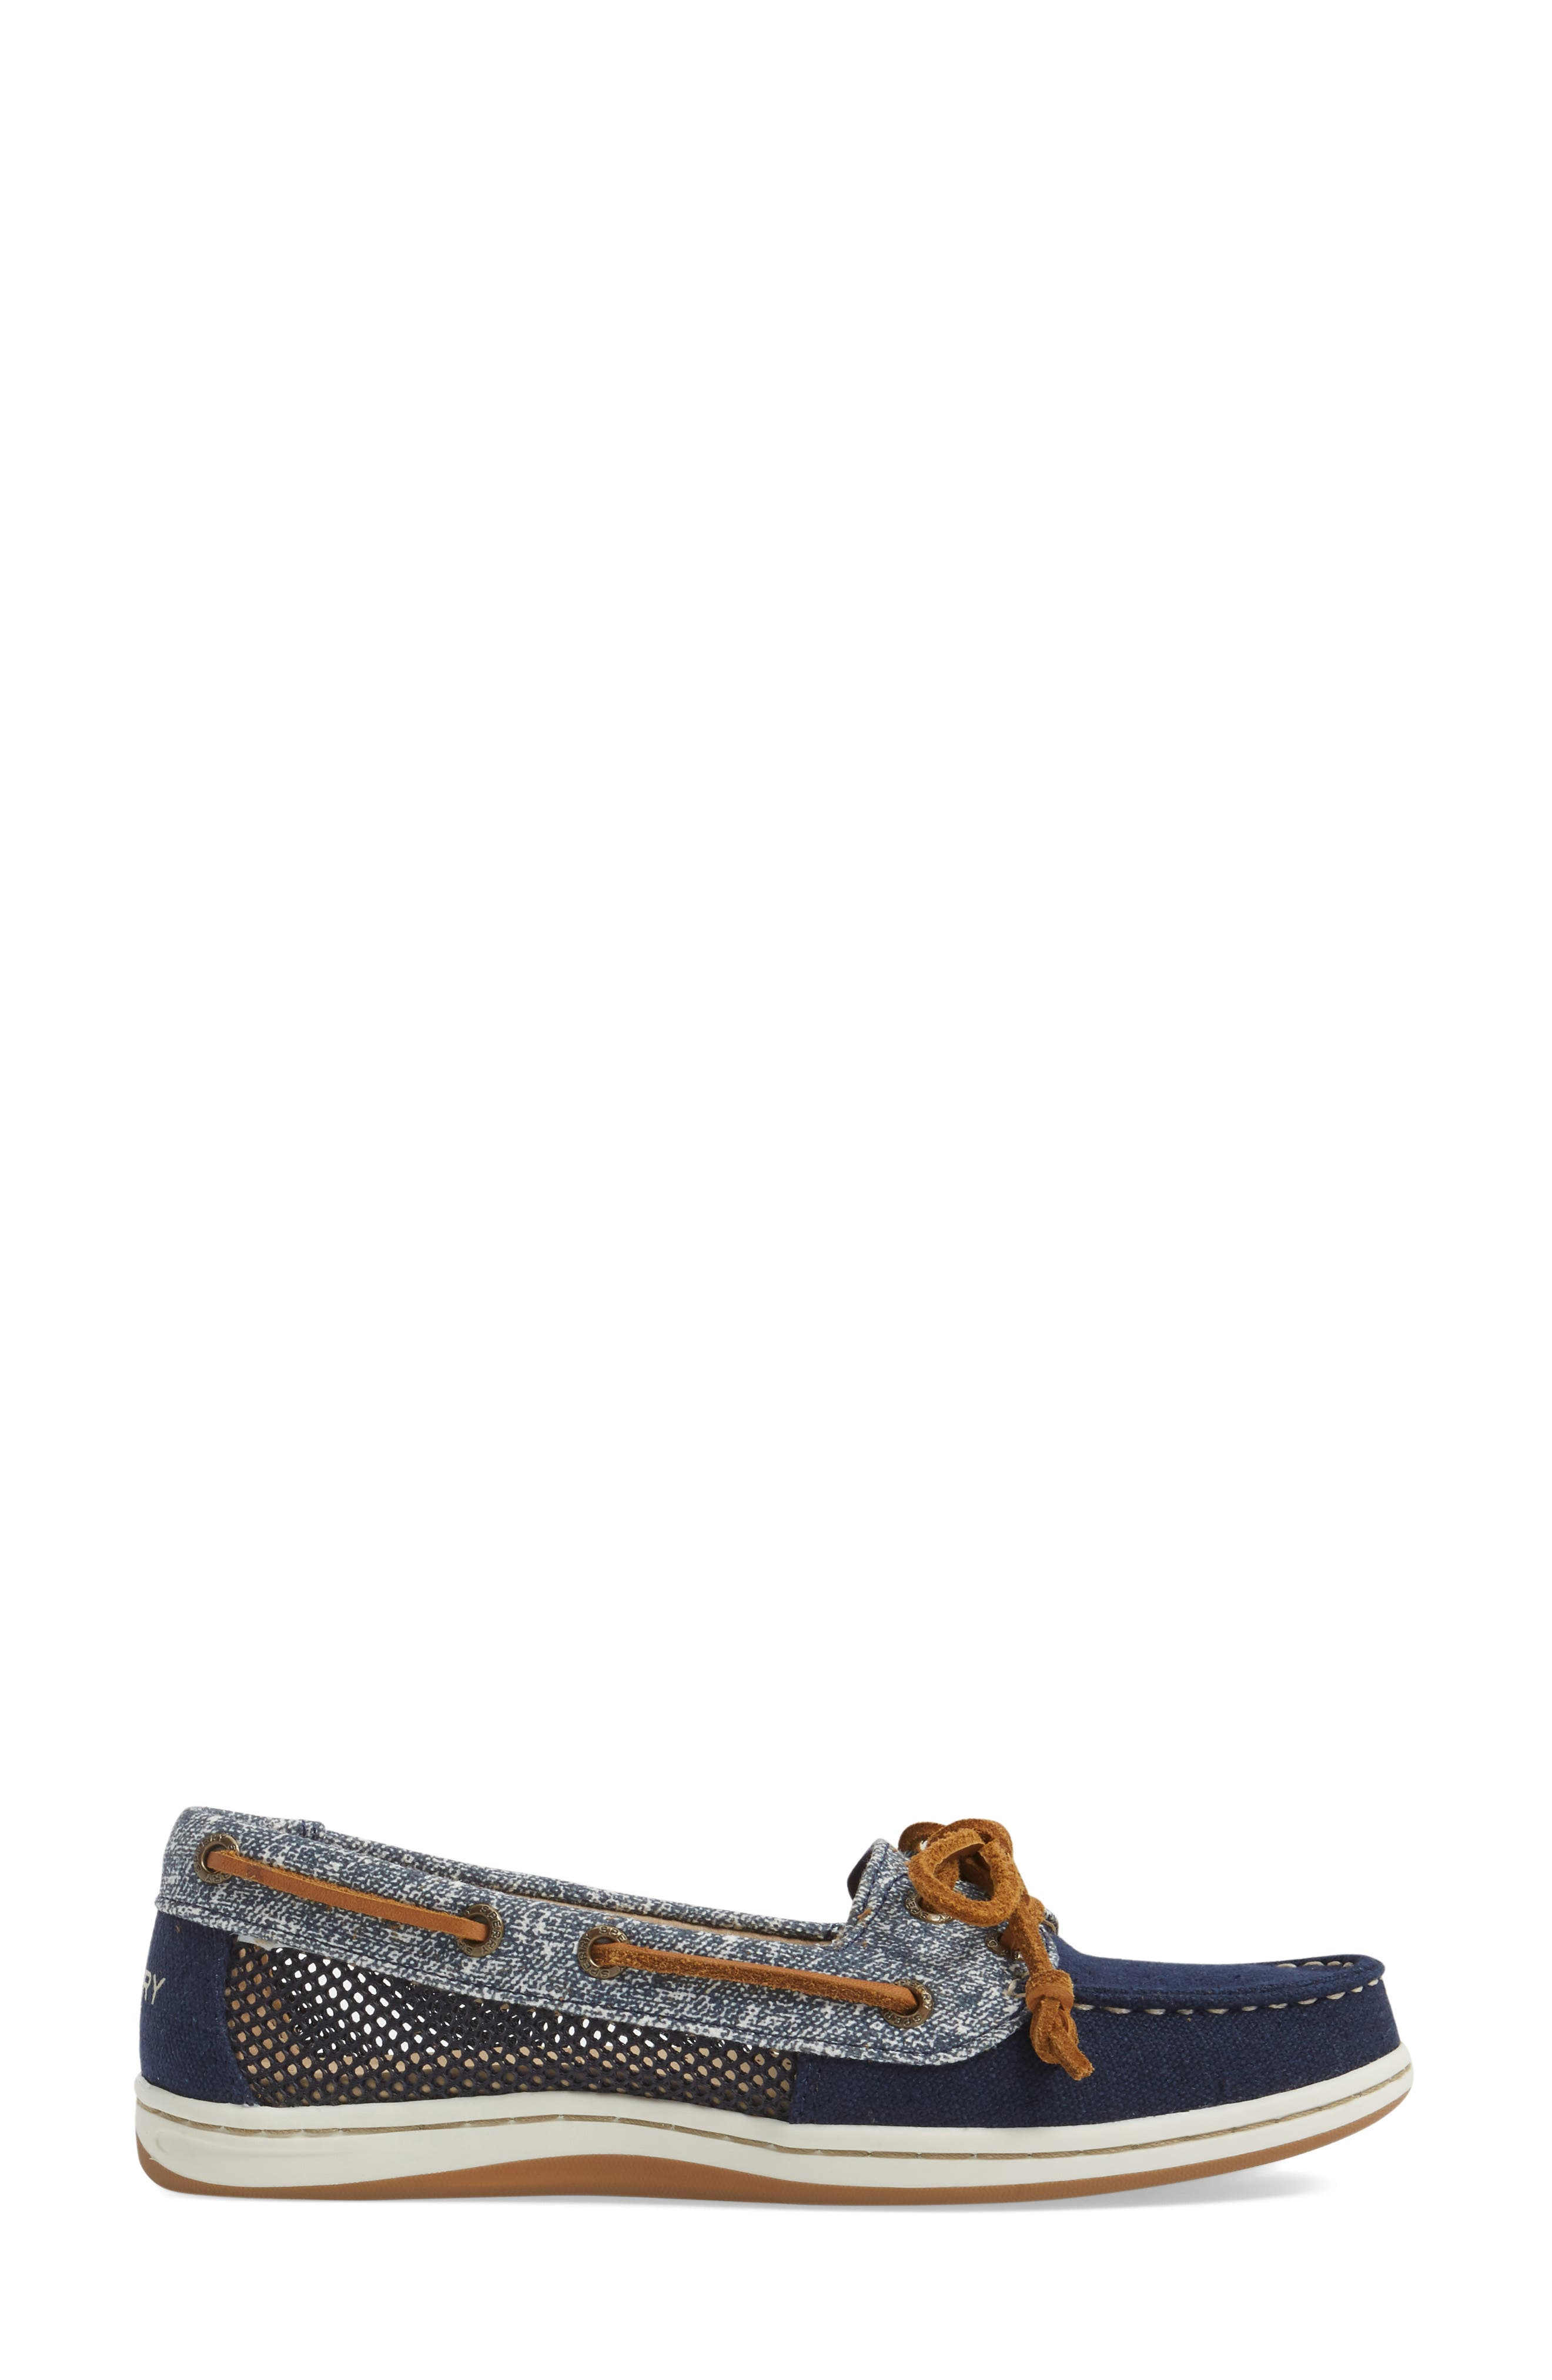 'Firefish' Boat Shoe,                             Alternate thumbnail 28, color,